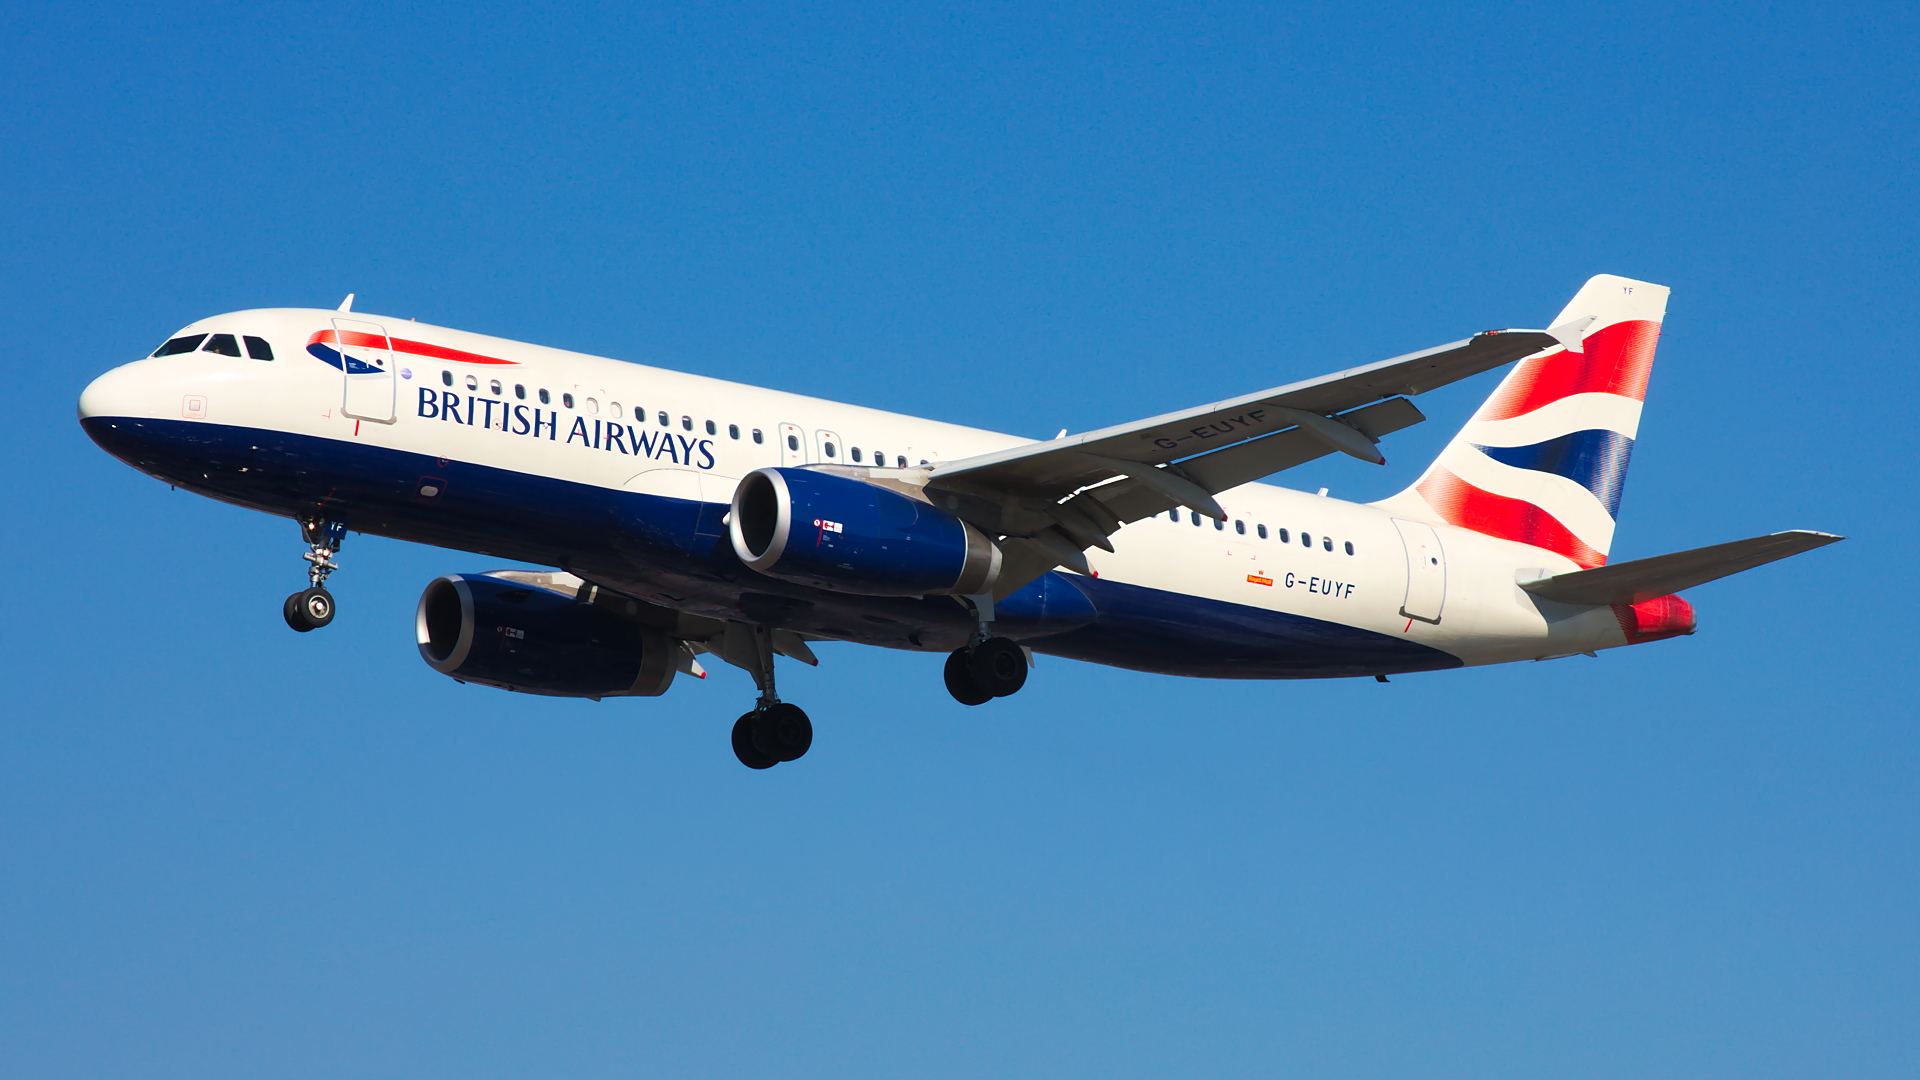 G-EUYF ✈ British Airways Airbus A320-232 @ London-Heathrow